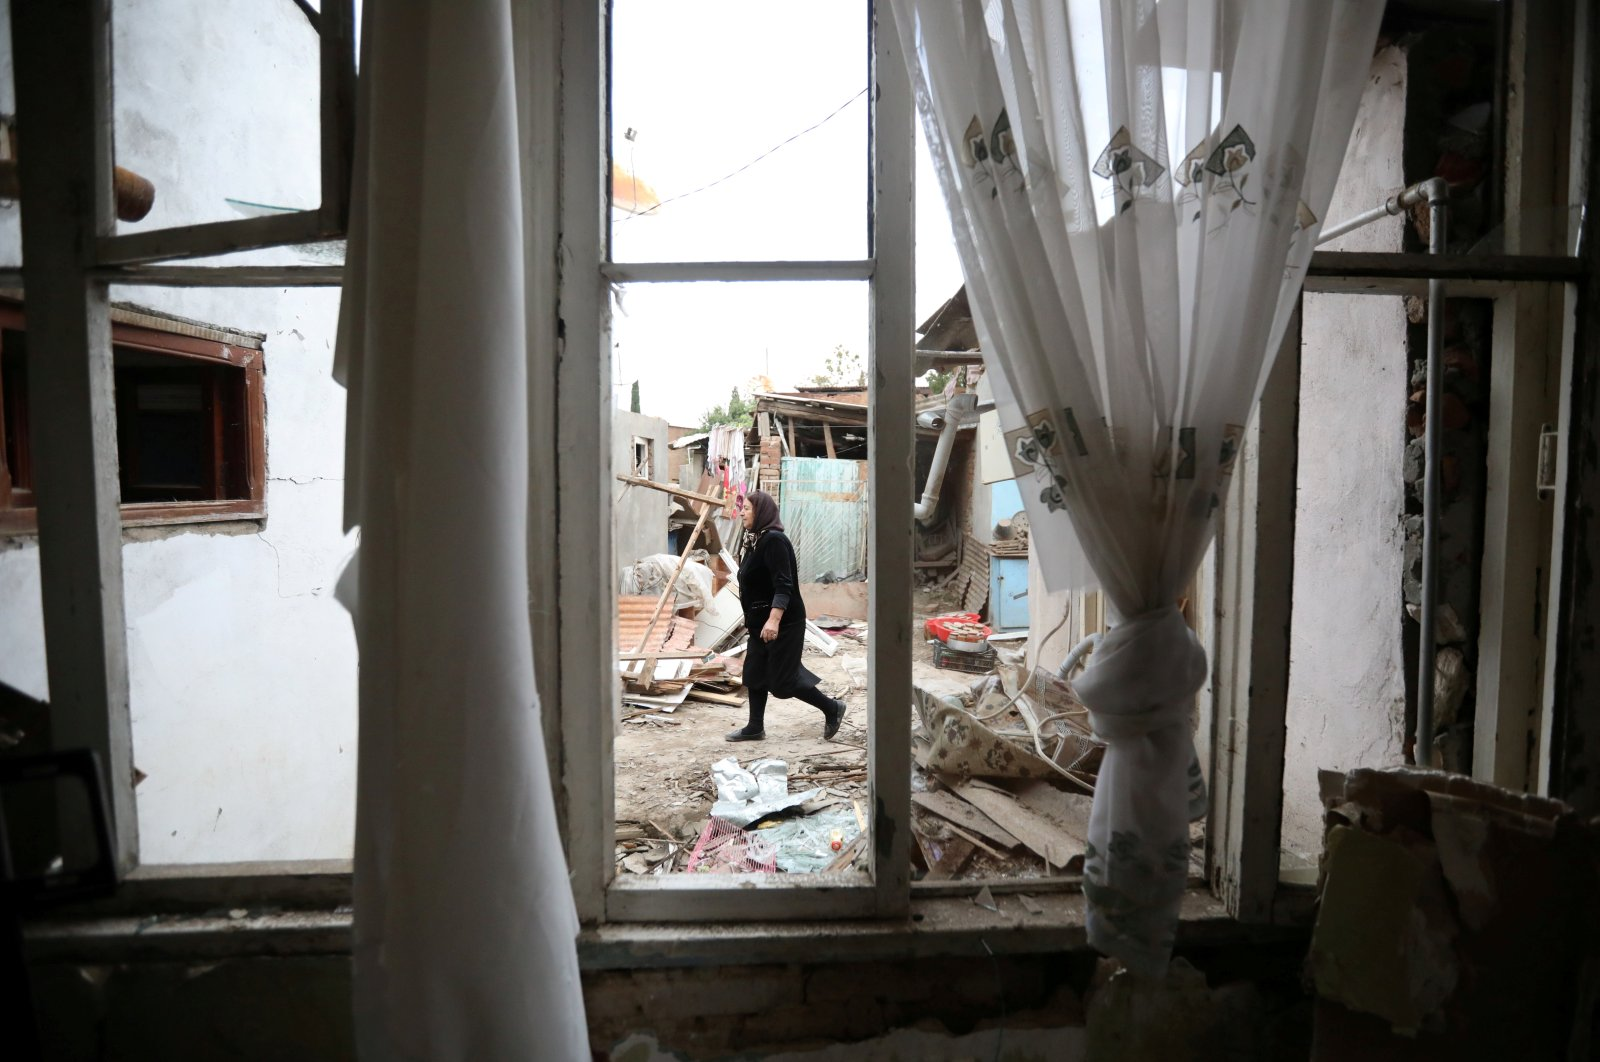 A woman walks past a house damaged by recent Armenian shelling during a military conflict over Nagorno-Karabakh, in the city of Ganja, Azerbaijan, Oct. 6, 2020. (Reuters Photo)